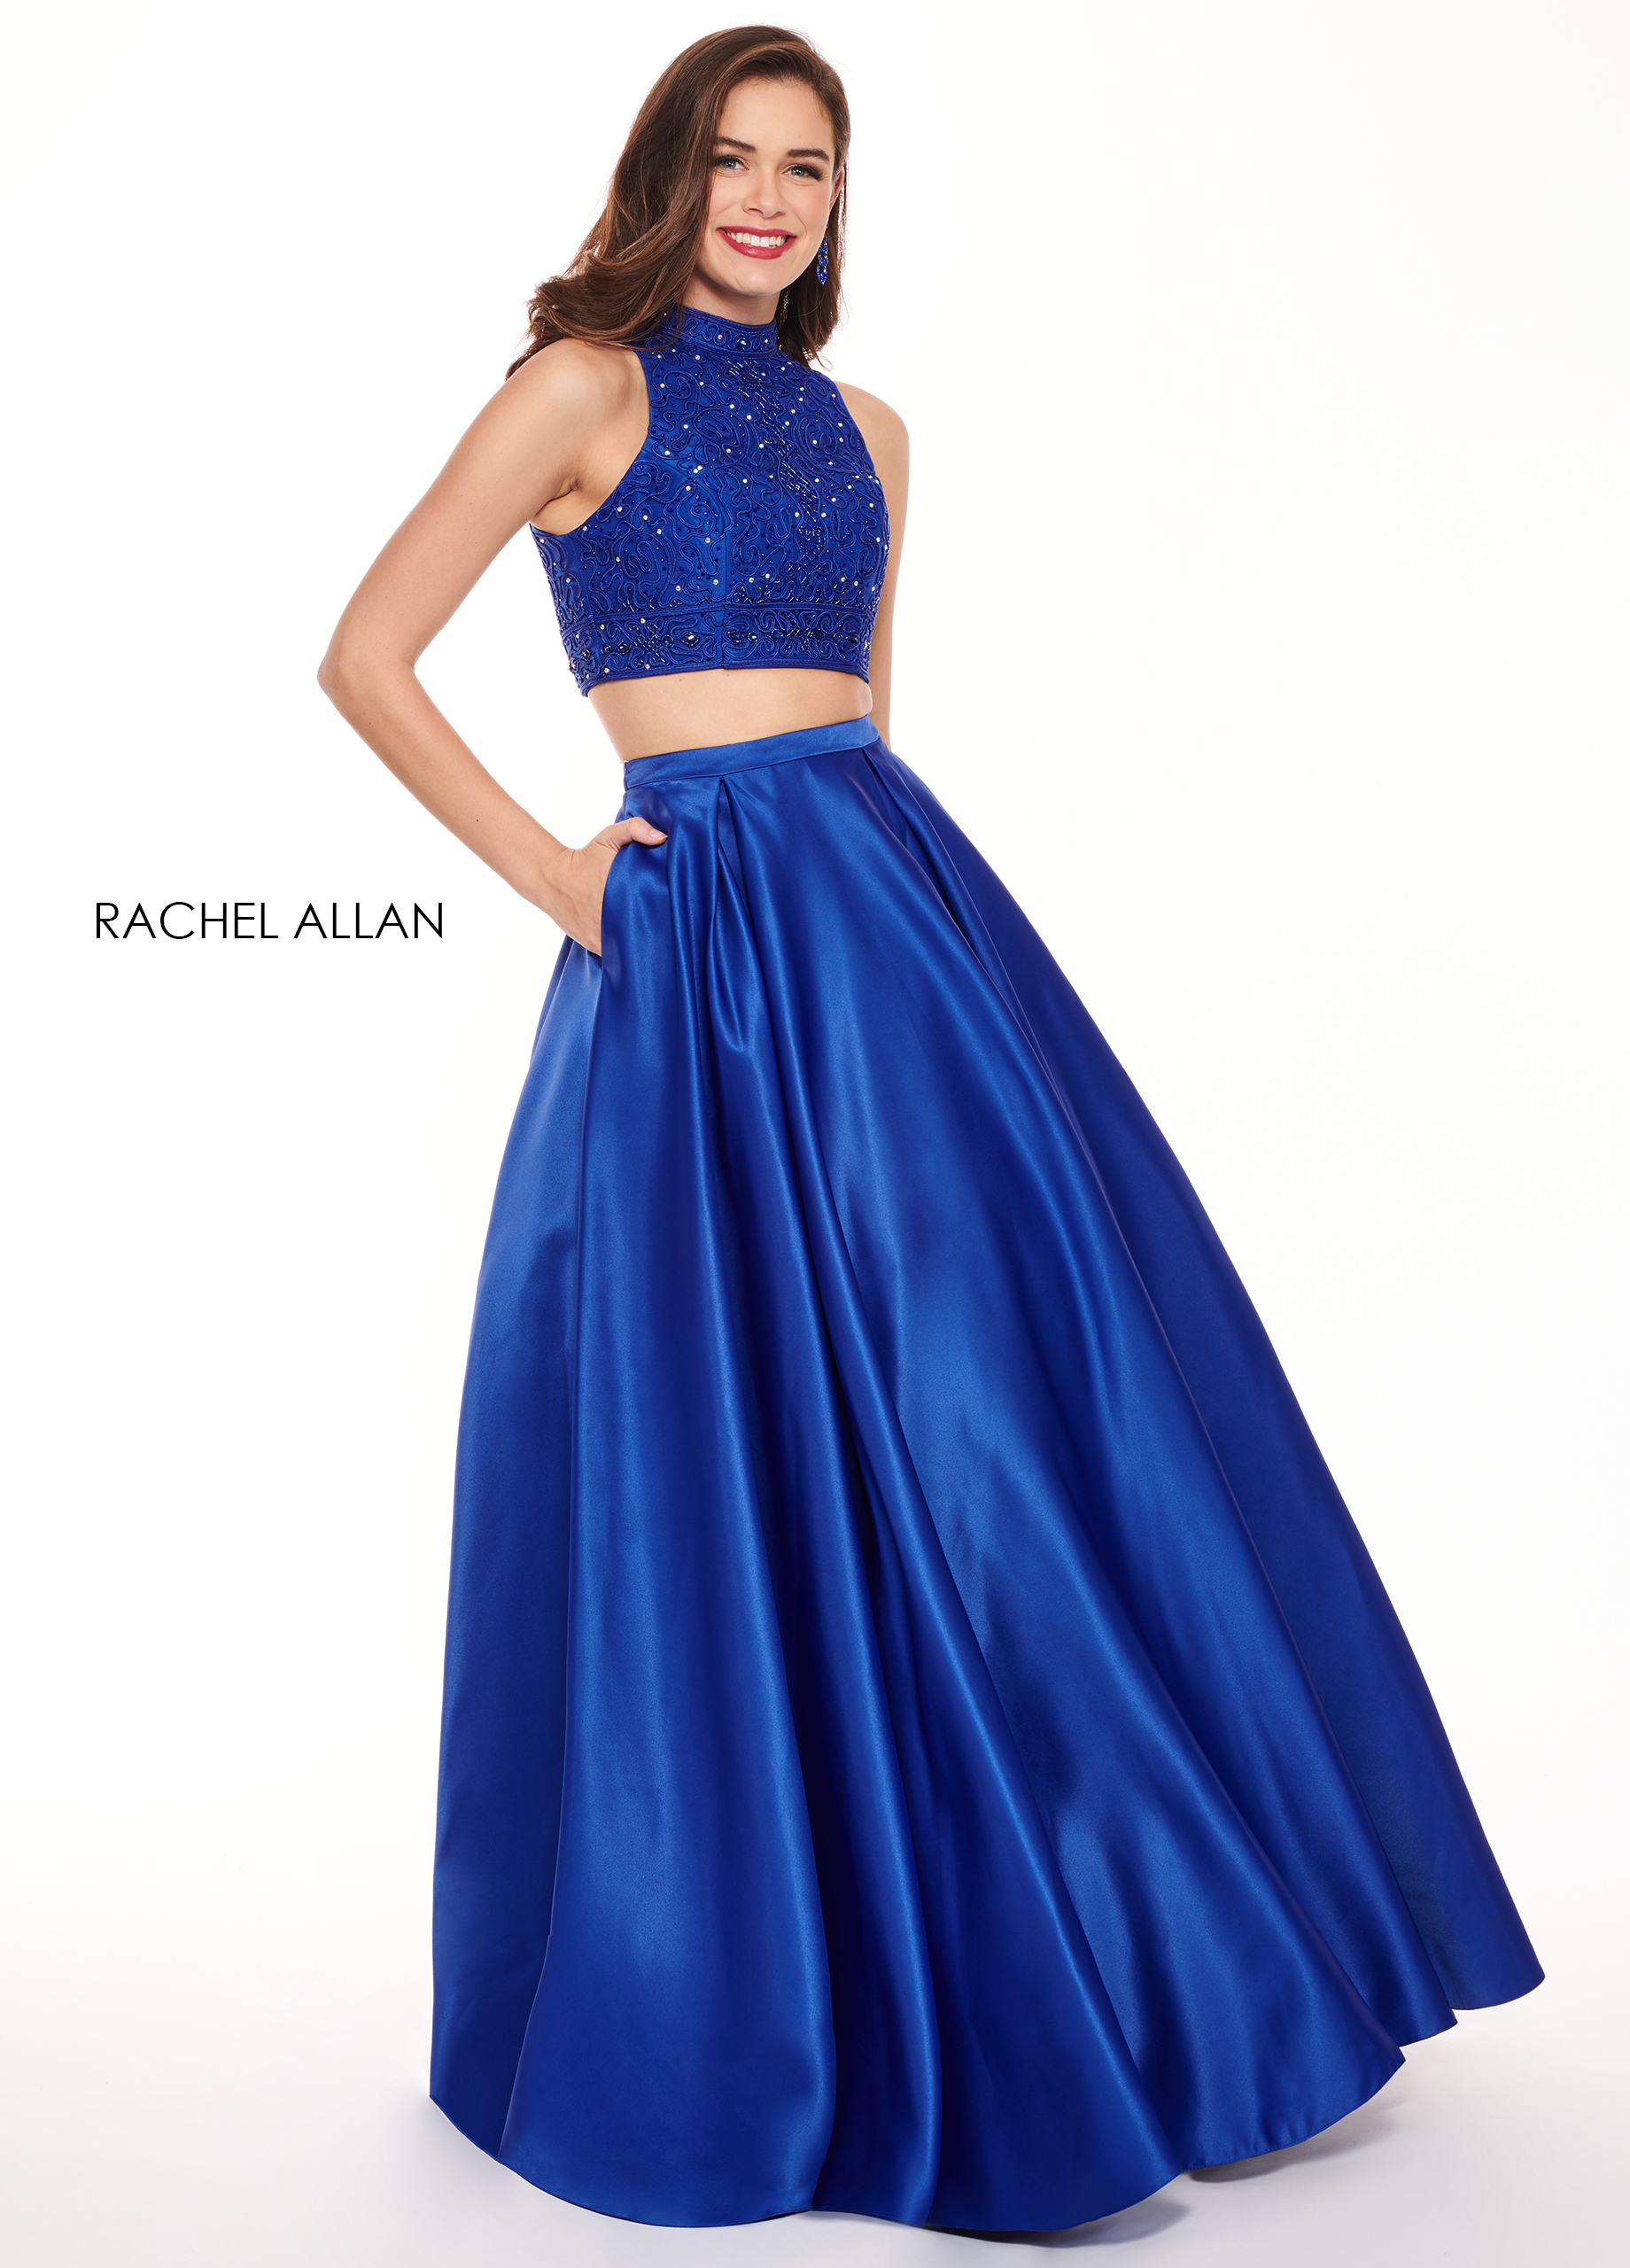 Halter Two-Piece Prom Dresses in Royal Color